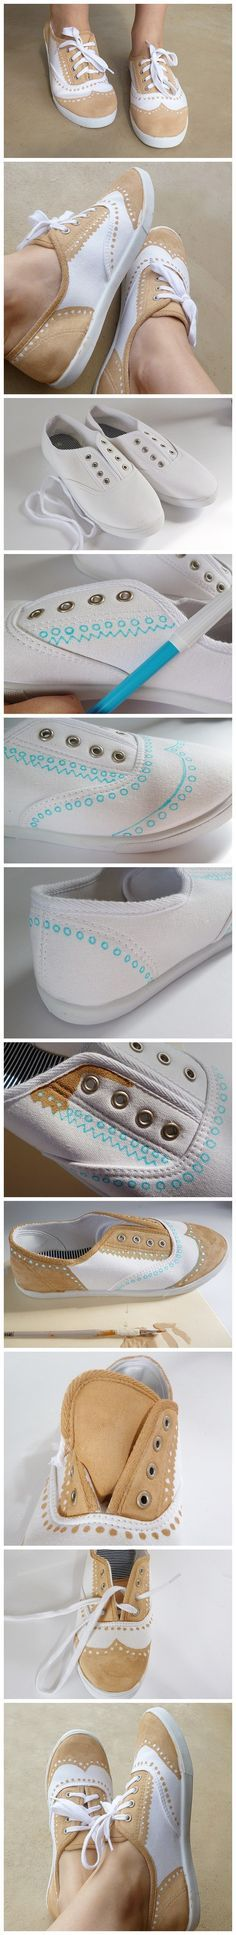 oxfords DIY. My mind was blown. I have to do this.